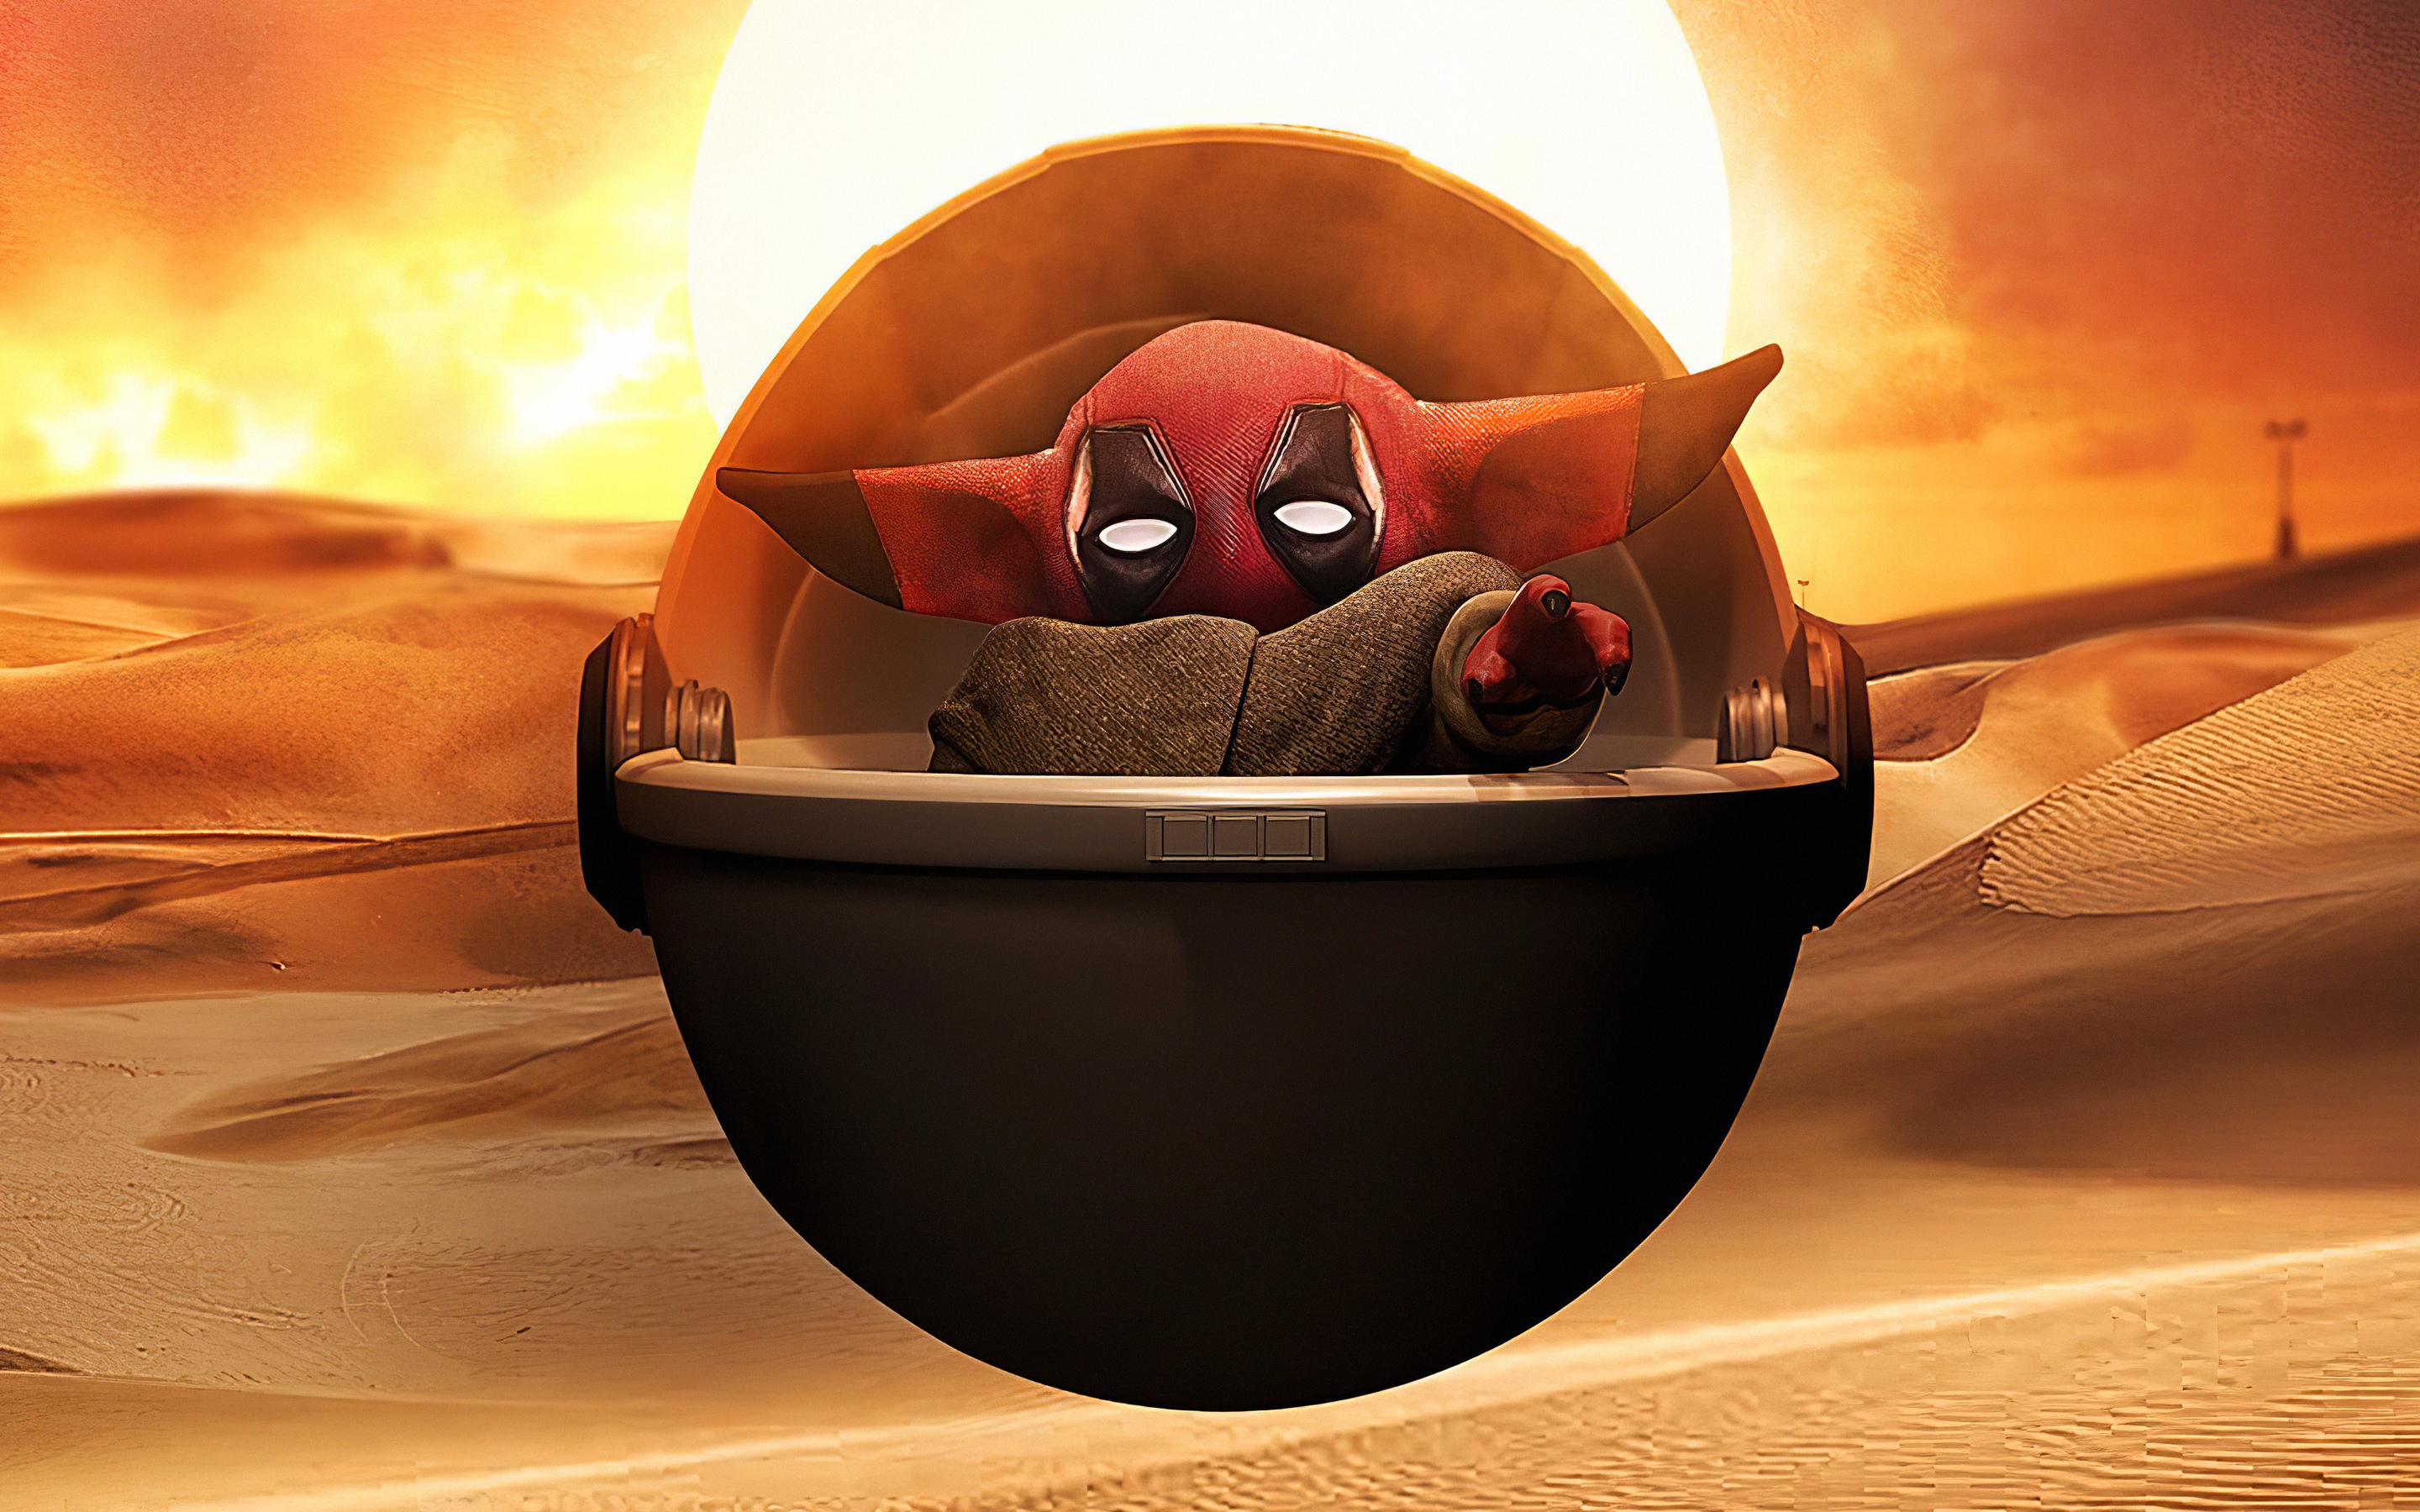 2880x1800 Deadpool Baby Yoda Macbook Pro Retina Hd 4k Wallpapers Images Backgrounds Photos And Pictures